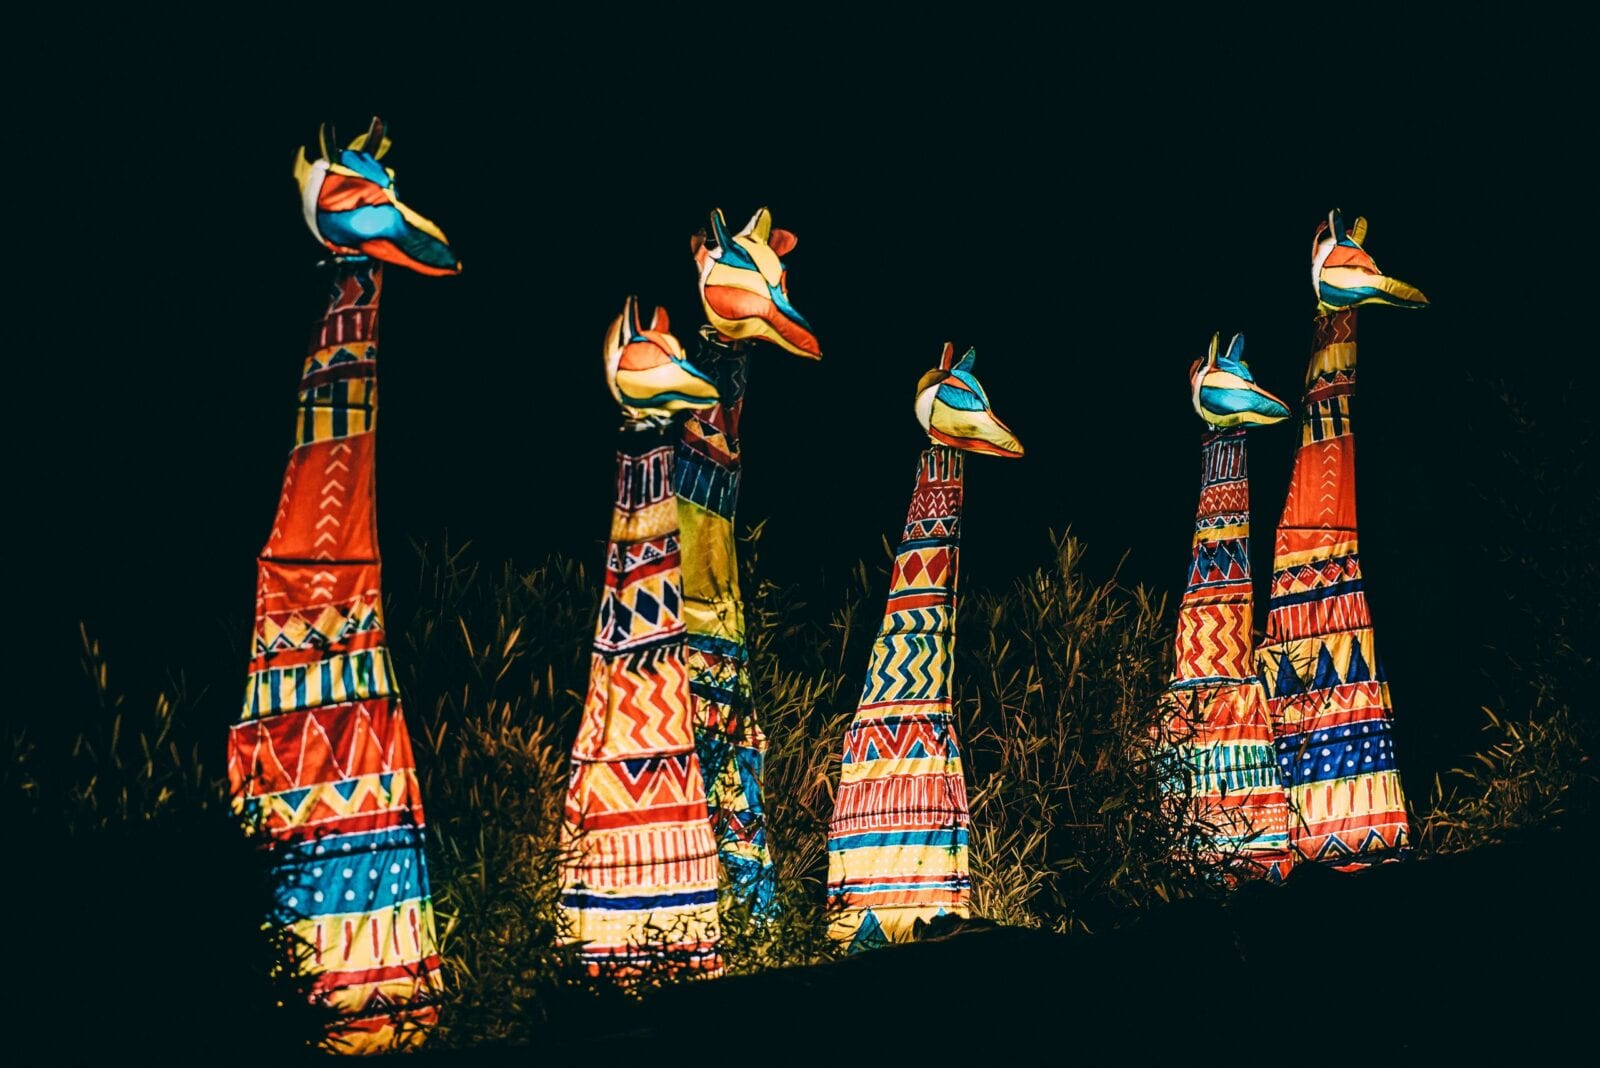 Chester Zoo's Lantern Festival returns this year and you can grab tickets now, The Manc